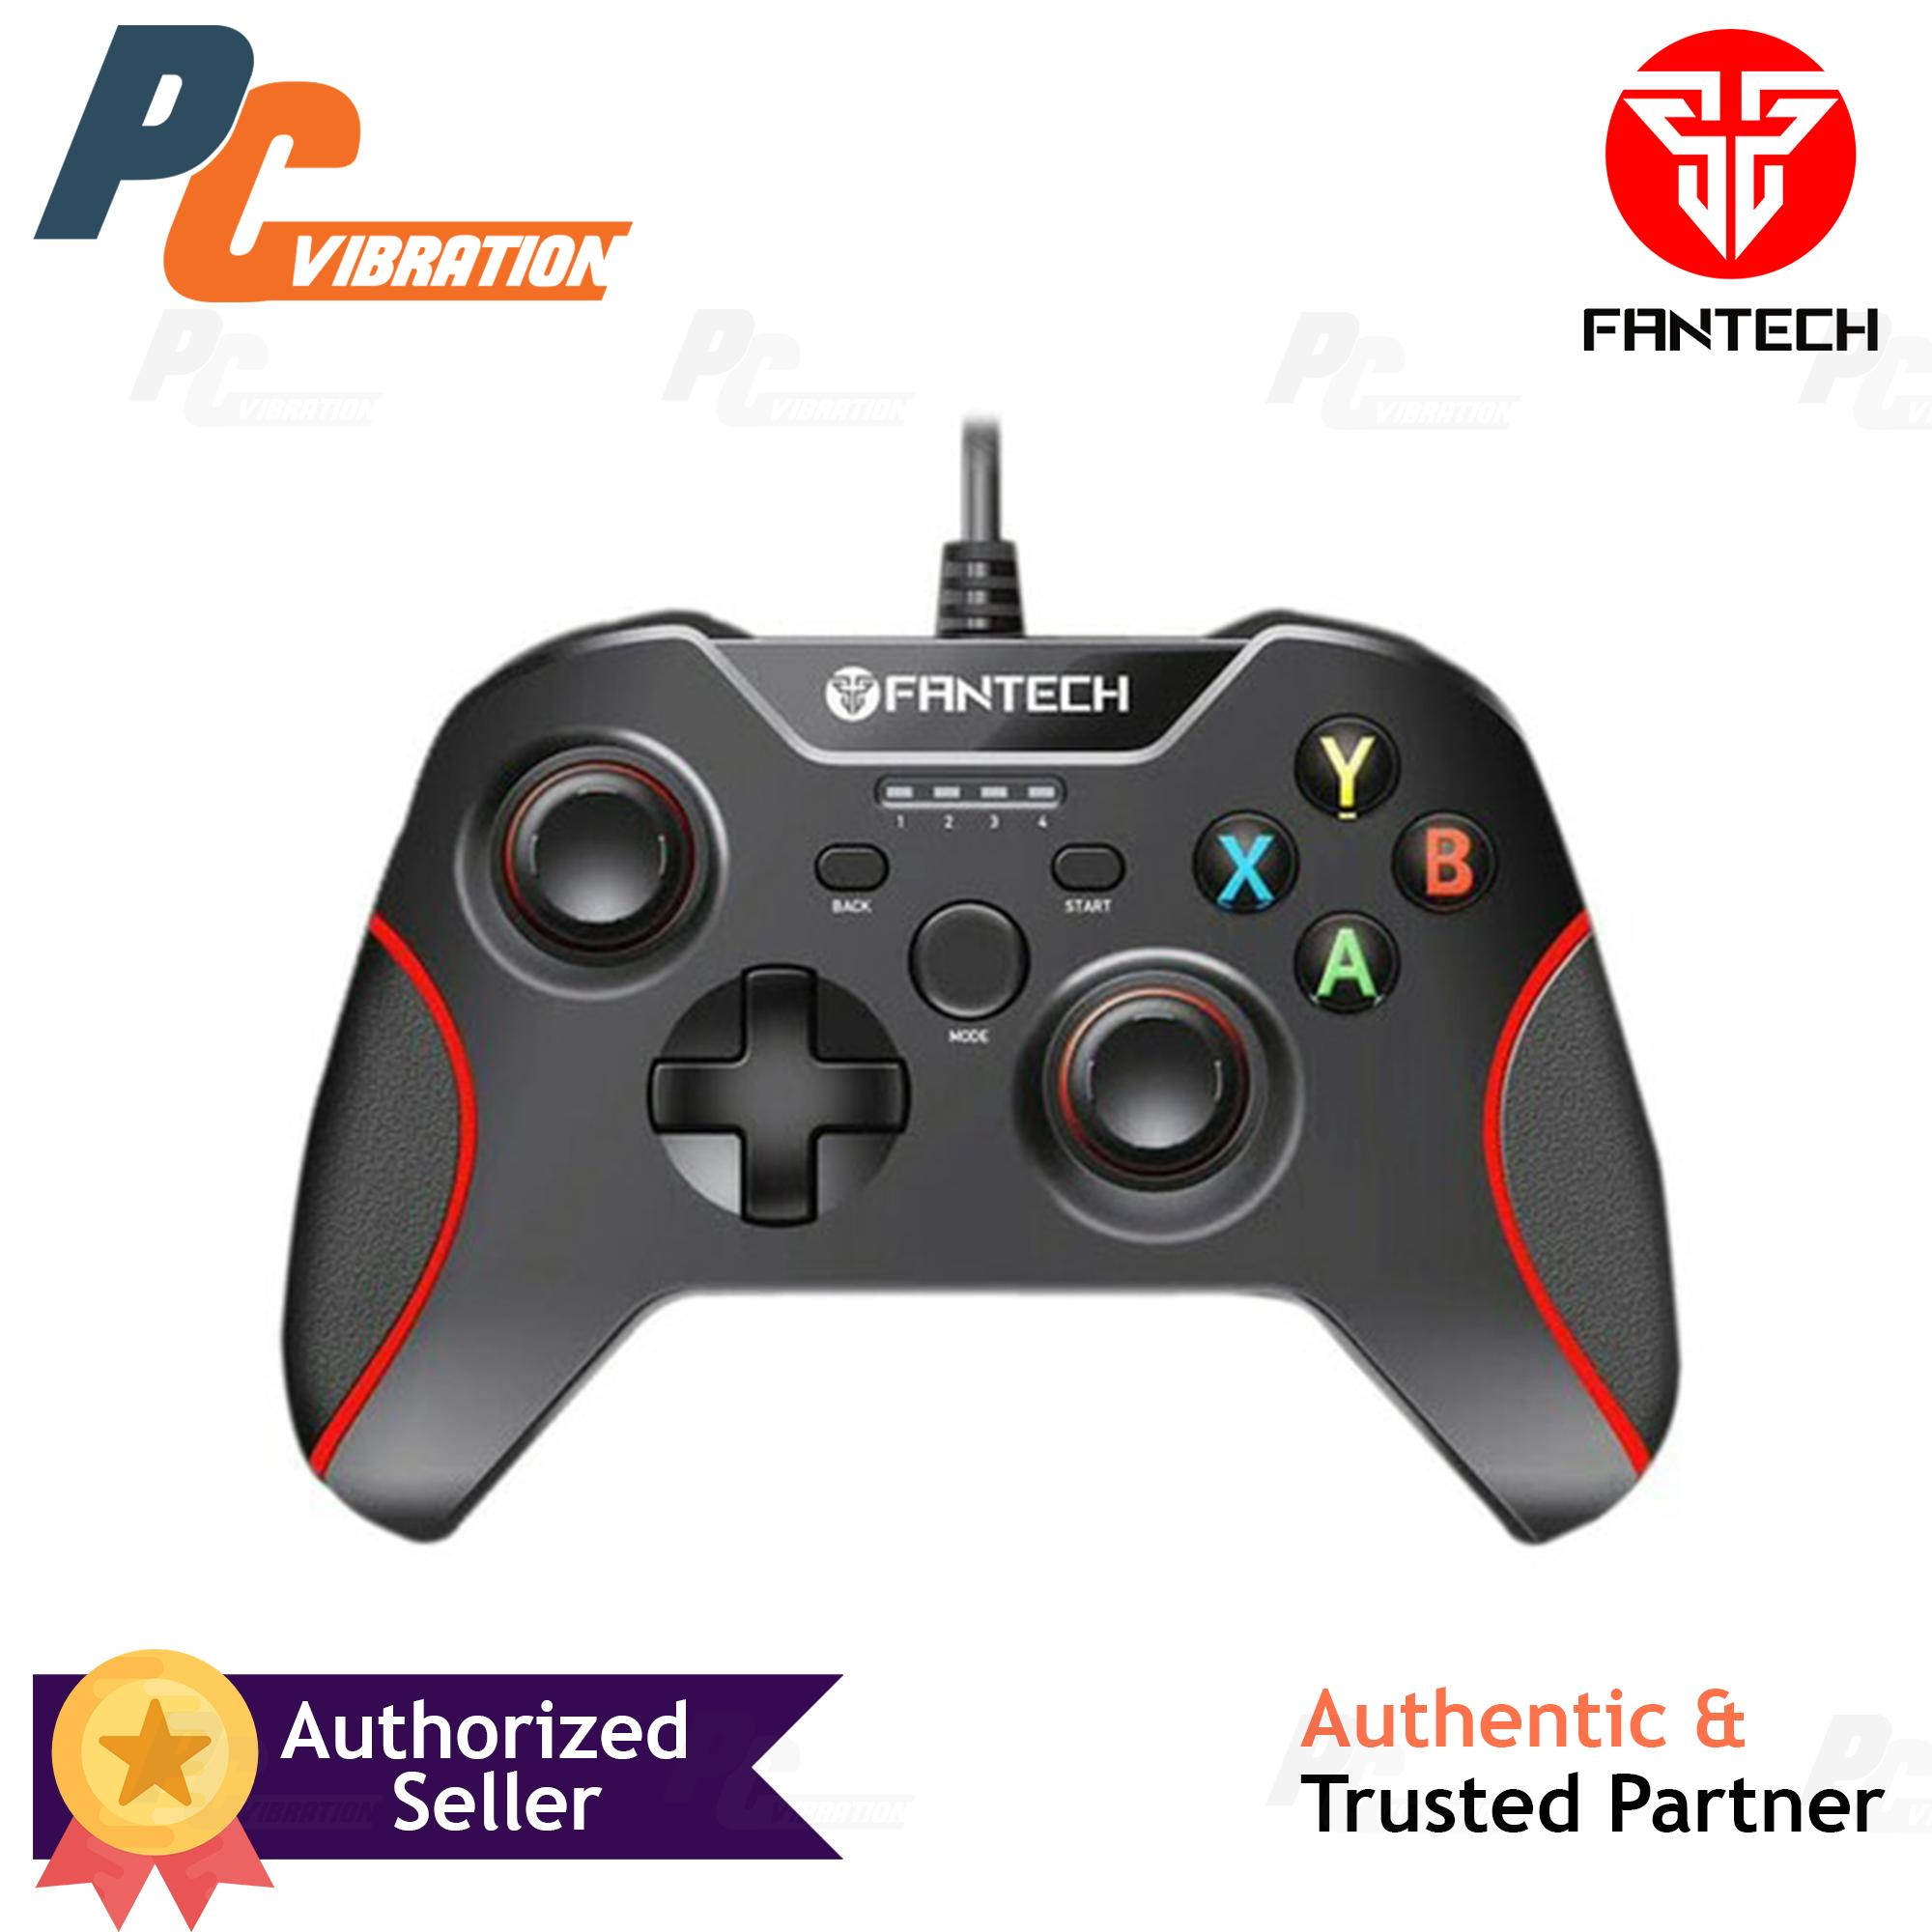 FANTECH GP11 SHOOTER WIRED GAMING CONTROLLER [GAMEPAD JOY STICK] PC/PS3/ANDROID